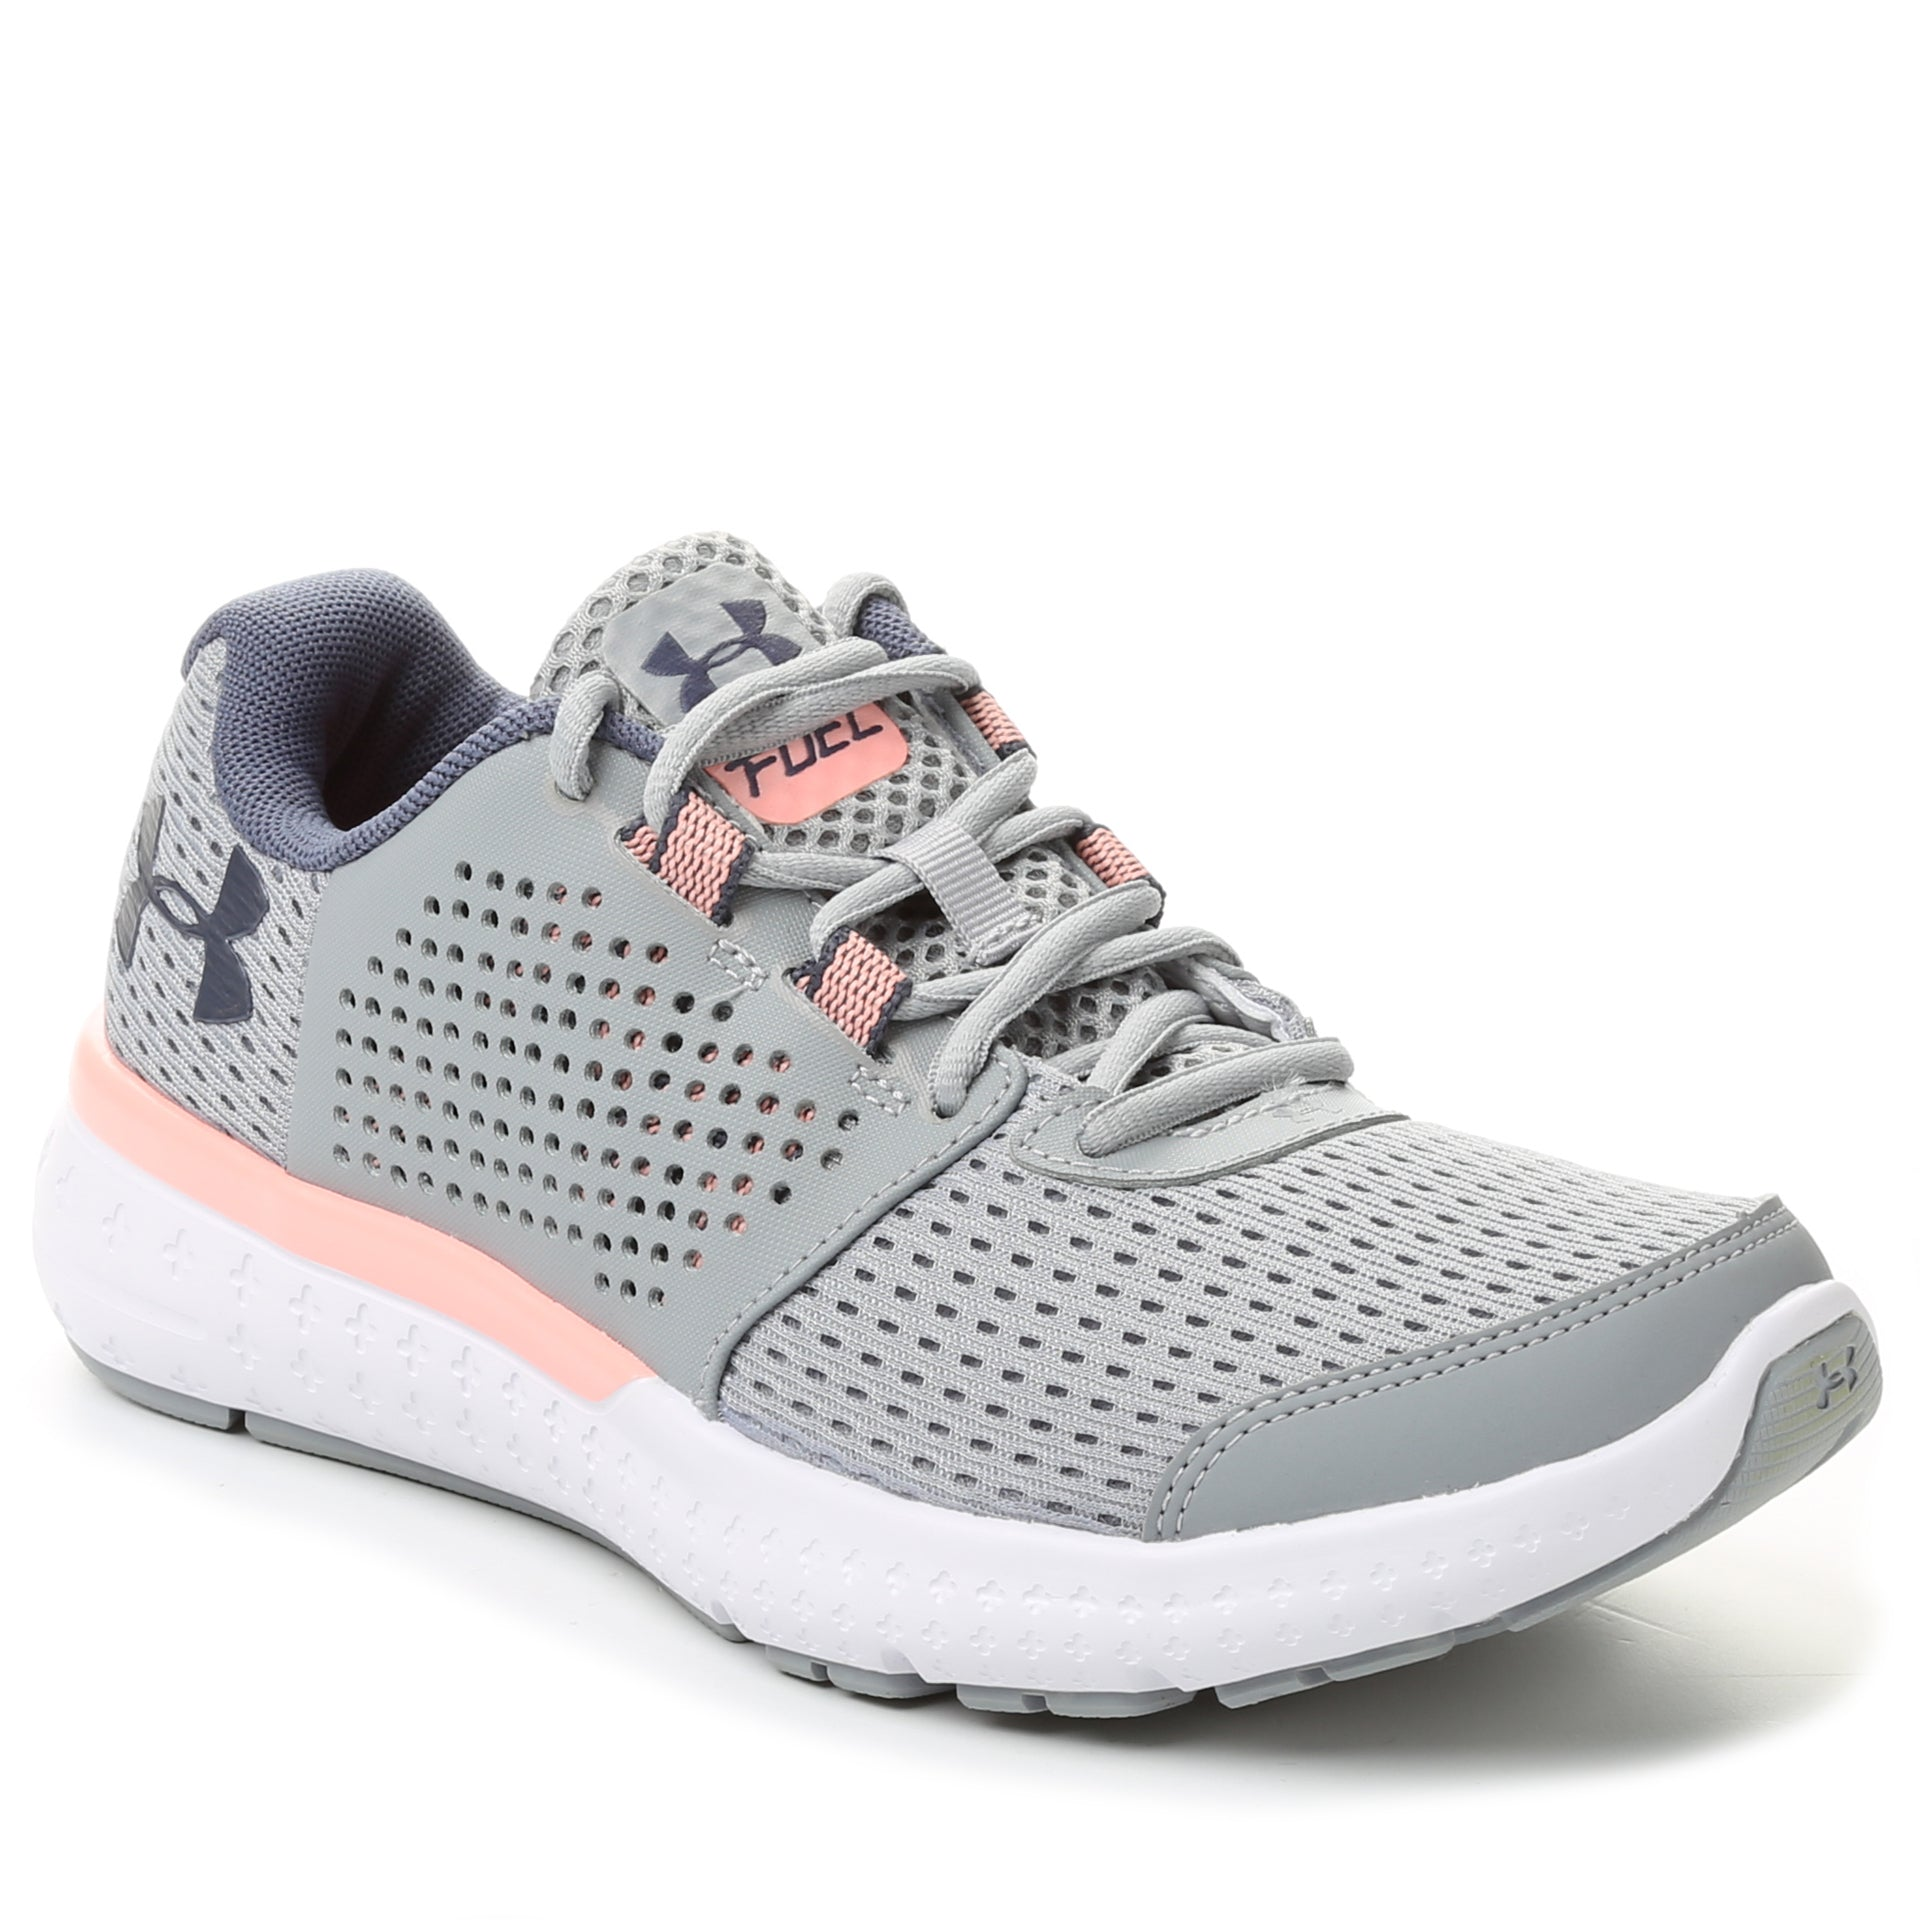 Under Armour Women's Micro G Fuel